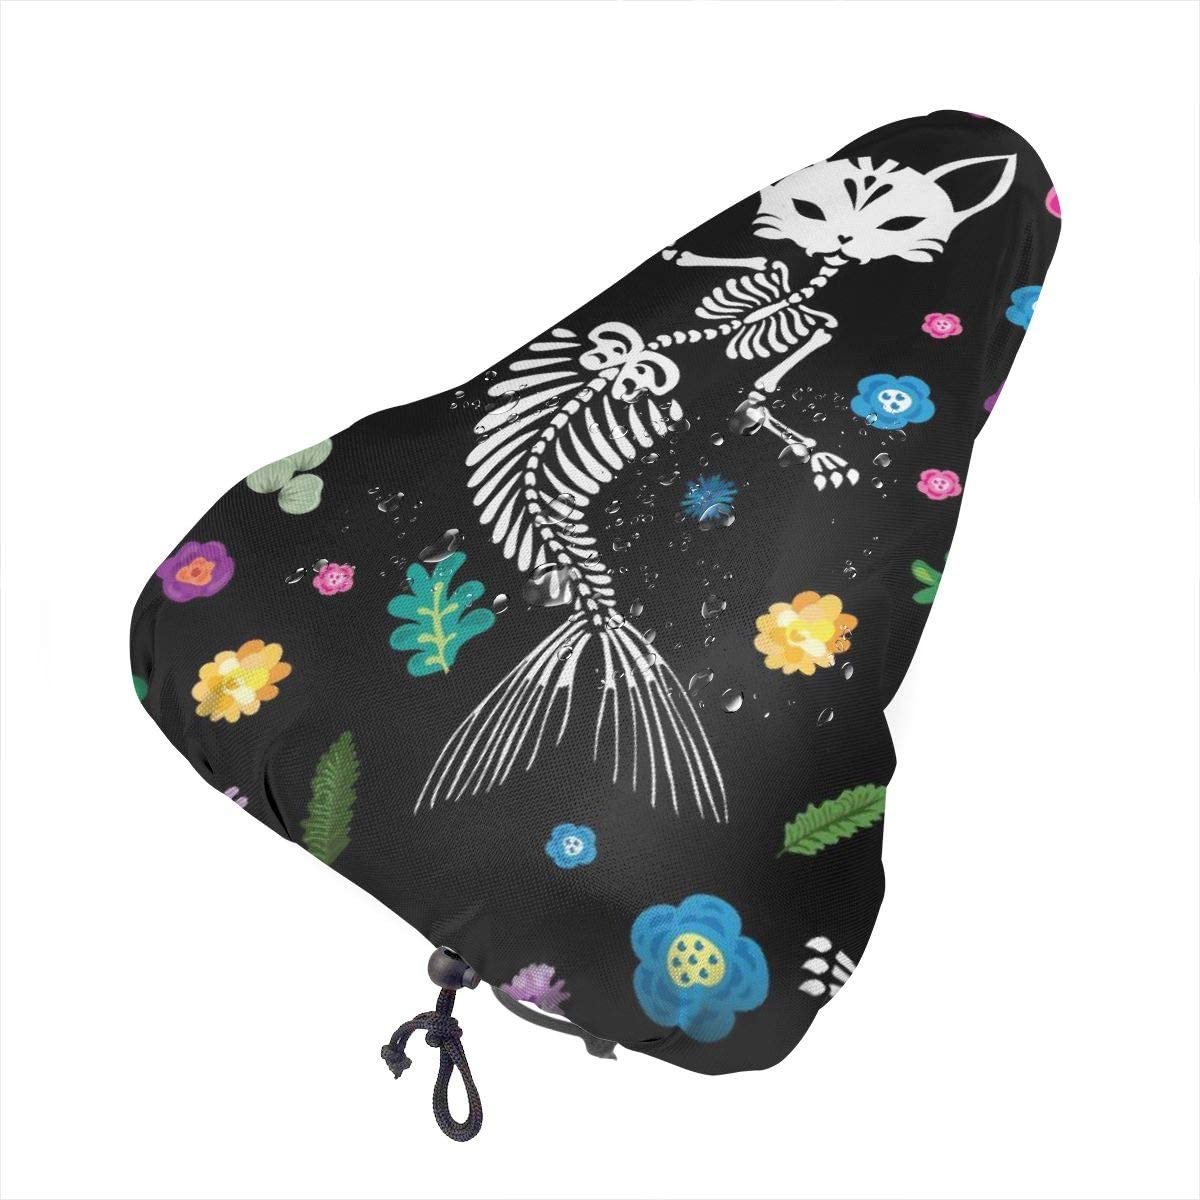 ZHOUSUN Waterproof Bike Seat Cover Watercolor Puppy with A Small Tabby Kitten Bicycle Saddle Rain Dust Covers with Drawstring,Comfort for Women,Men,Kids